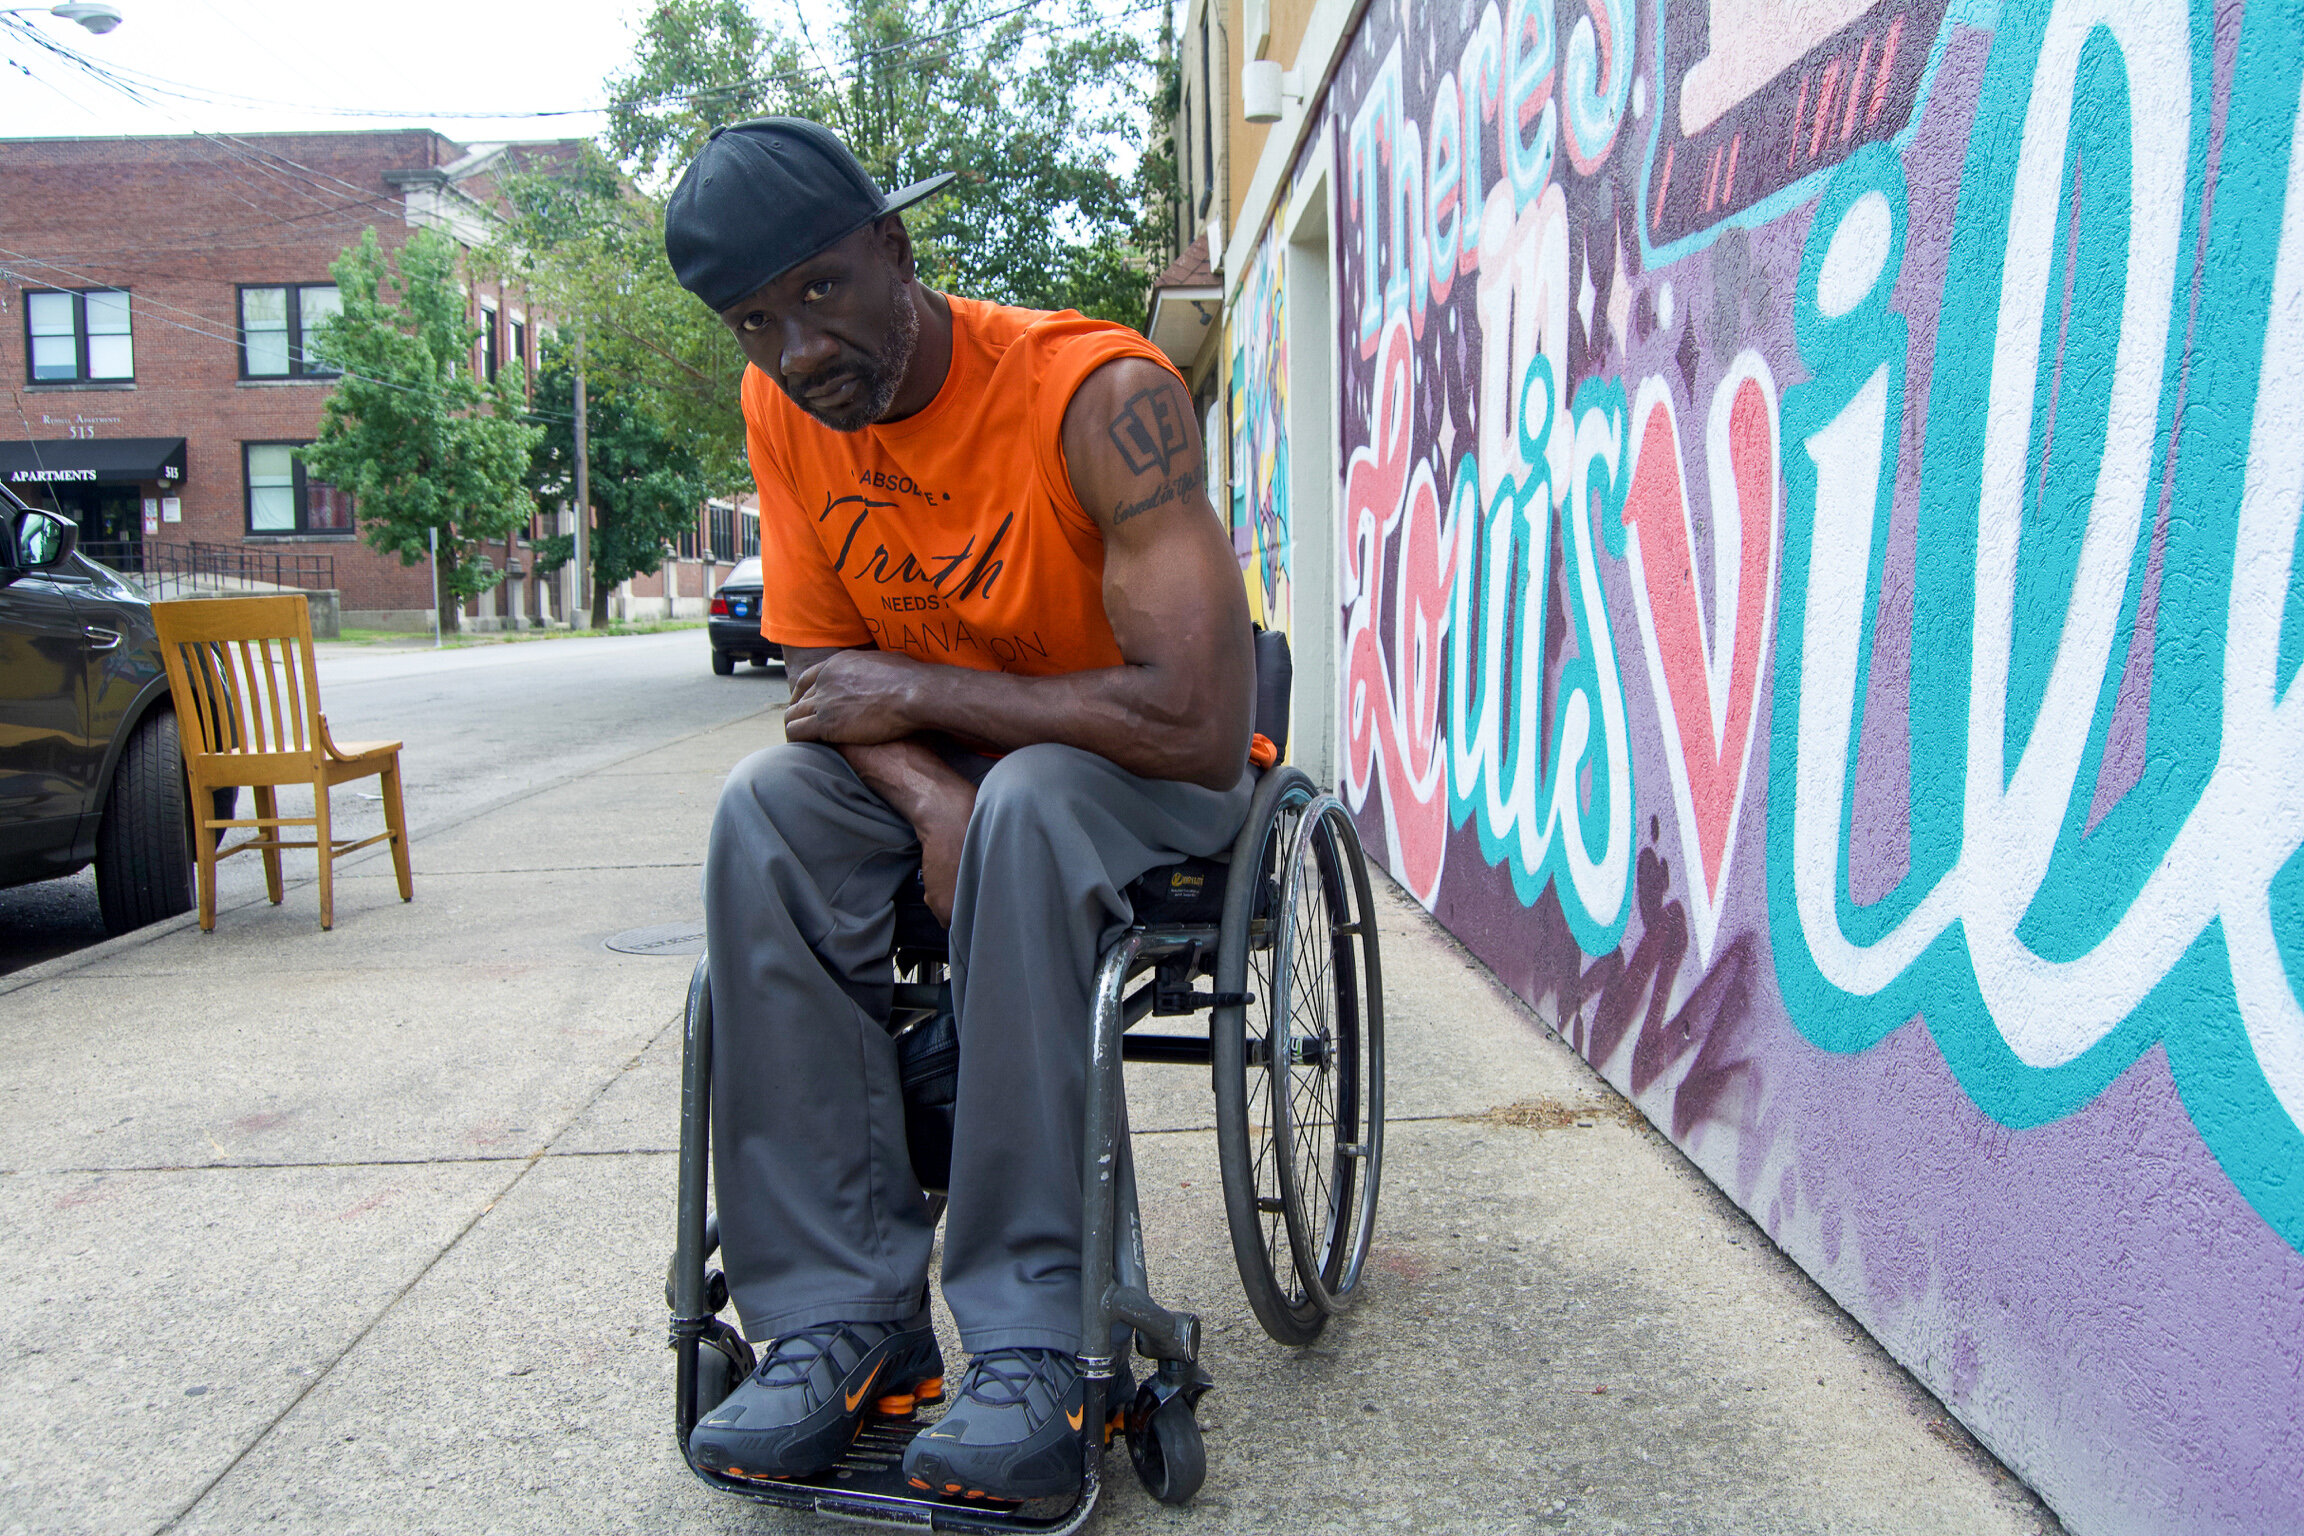 """""""We're in a good place, man. Personally, I got hit when I was 18 years old, in 1992, a gunshot. I used to play football for Louisville. My journey has always been about well-being, you know, trying to heal the injuries and mental scars. I was just trying to find my way to function in life. My whole thing has been with this physical challenge, that I've been faced with. That's with trying to remove myself from it, whether that be getting out of the wheelchair or making it as comfortable for me to maneuver as possible. With that being said, it starts with what I put in my body. I went on a spiritual journey because I wasn't spiritually grounded.  We grew up on the block, in the neighborhood, like everyone else. We were barbecuing every day and everyone would come over to the house. We would grill big ribs and chicken all the time. My pops died sick. My moms died sick. My oldest brother died sick and I got another brother that's about 500-600 pounds. I've been conscious and I watch it. I also look out for my family and friends.  One of the guys that was doing some artwork for me turned me on to Dr. Sebi. I looked dude up and told myself that I had to go see him before they kill him. I was turned on to him in 2014. Then me and my wife went to go see him in 2015. We stayed a month in Honduras because that's where his village is. He wasn't there because he was healing someone in Africa, who was a politician, by bringing him back to health.  We were with Dr. Sebi's family for about three weeks and they told me that he wanted to meet me. The last week we were there, we were wondering where Dr. Sebi was because we still didn't get to meet him. We were told that he got locked up. With that being said, the information that Dr. Sebi gave me was so valuable that if you follow it, it's flawless. Most people just don't have the discipline. A lot of people are kickin' it so much that they aren't interested in planting a garden and eating out of it.  I wanna make it as simple as pos"""